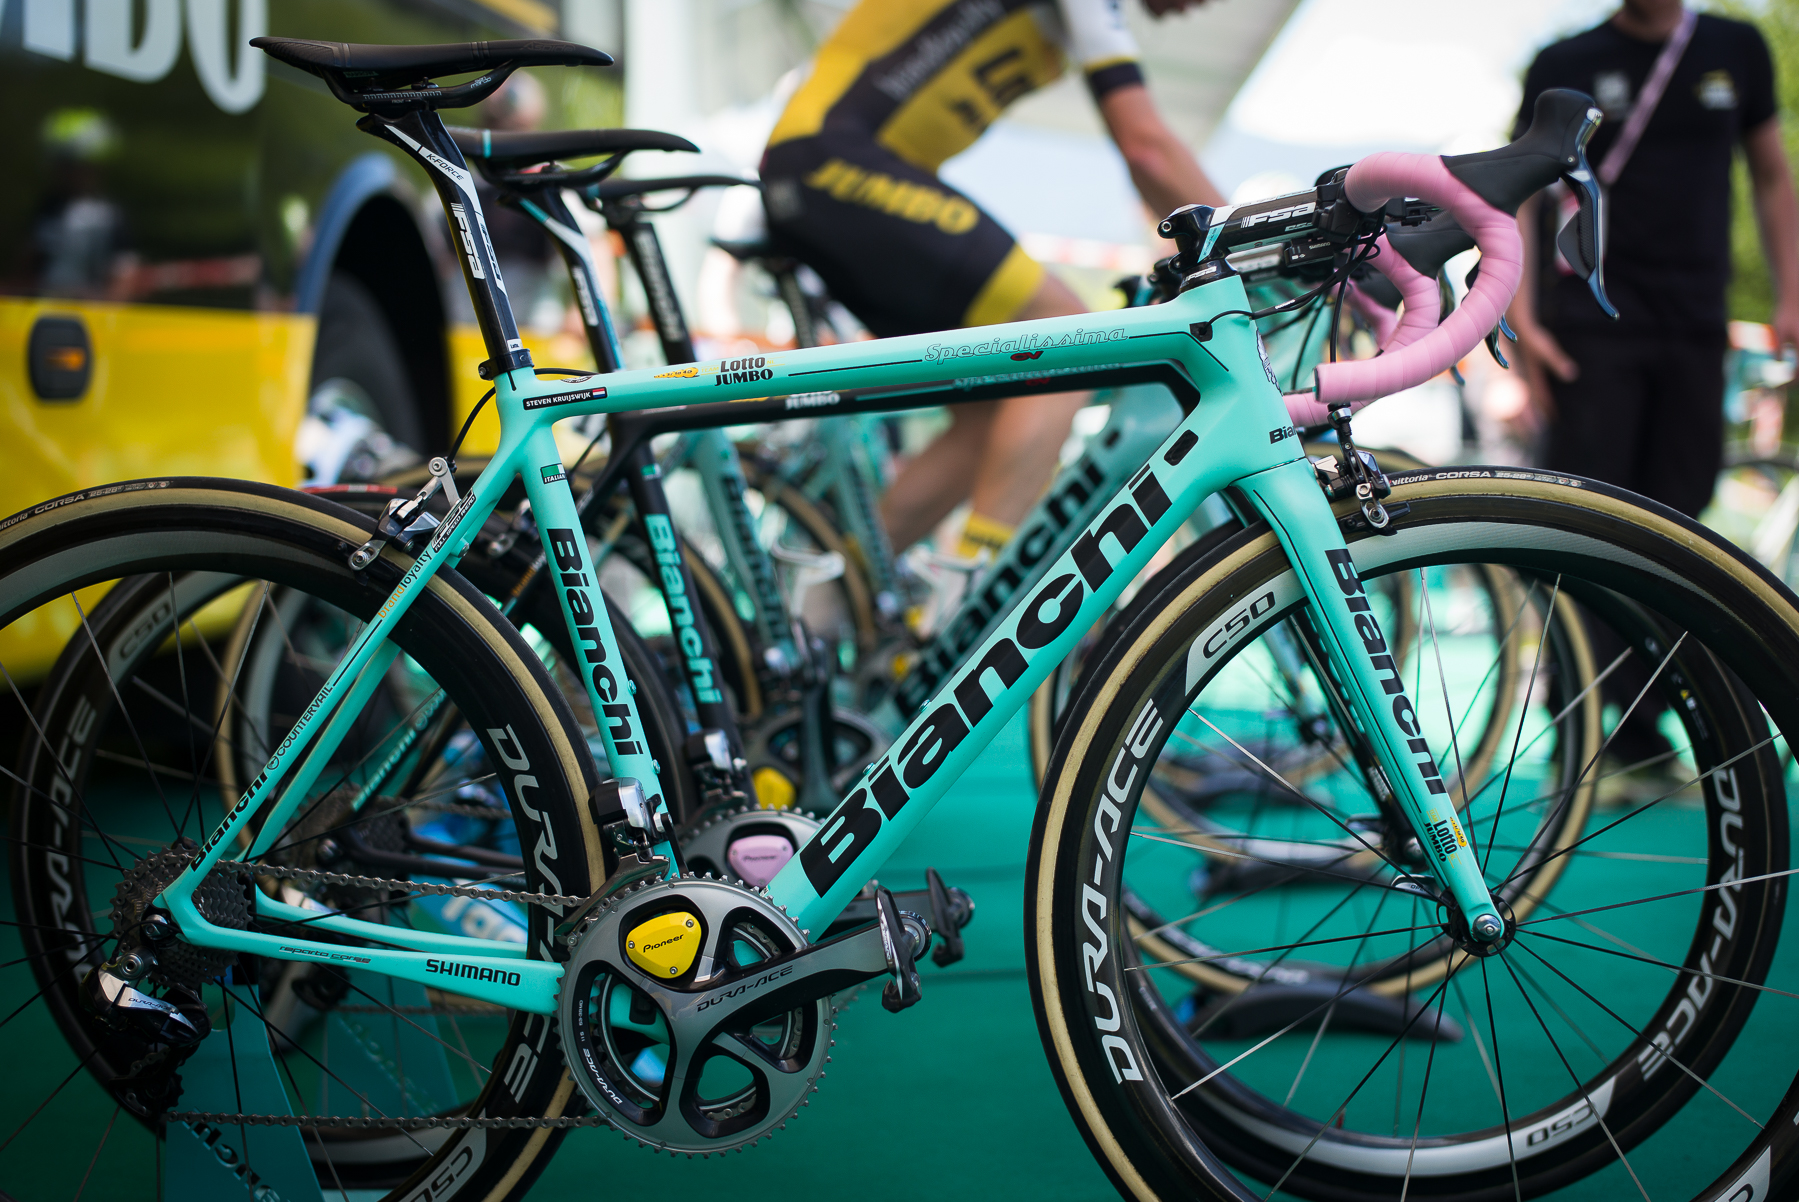 Bianchi in pink.